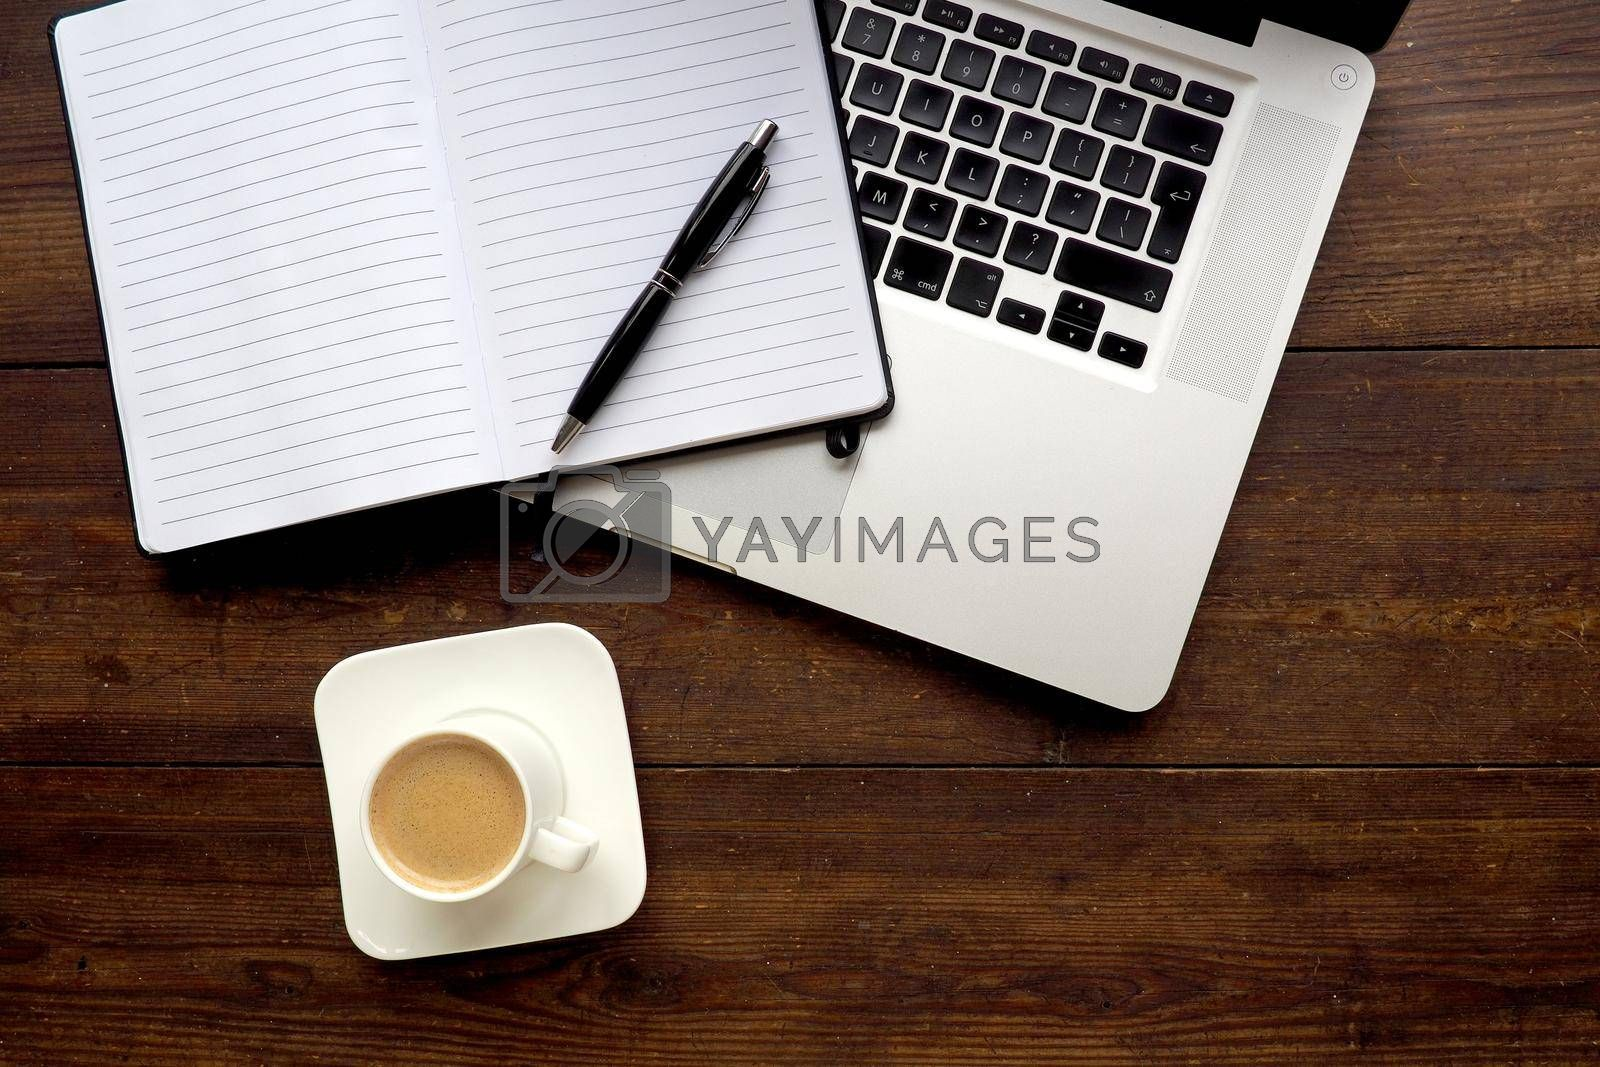 Coffee and notepad with computer, wooden desk